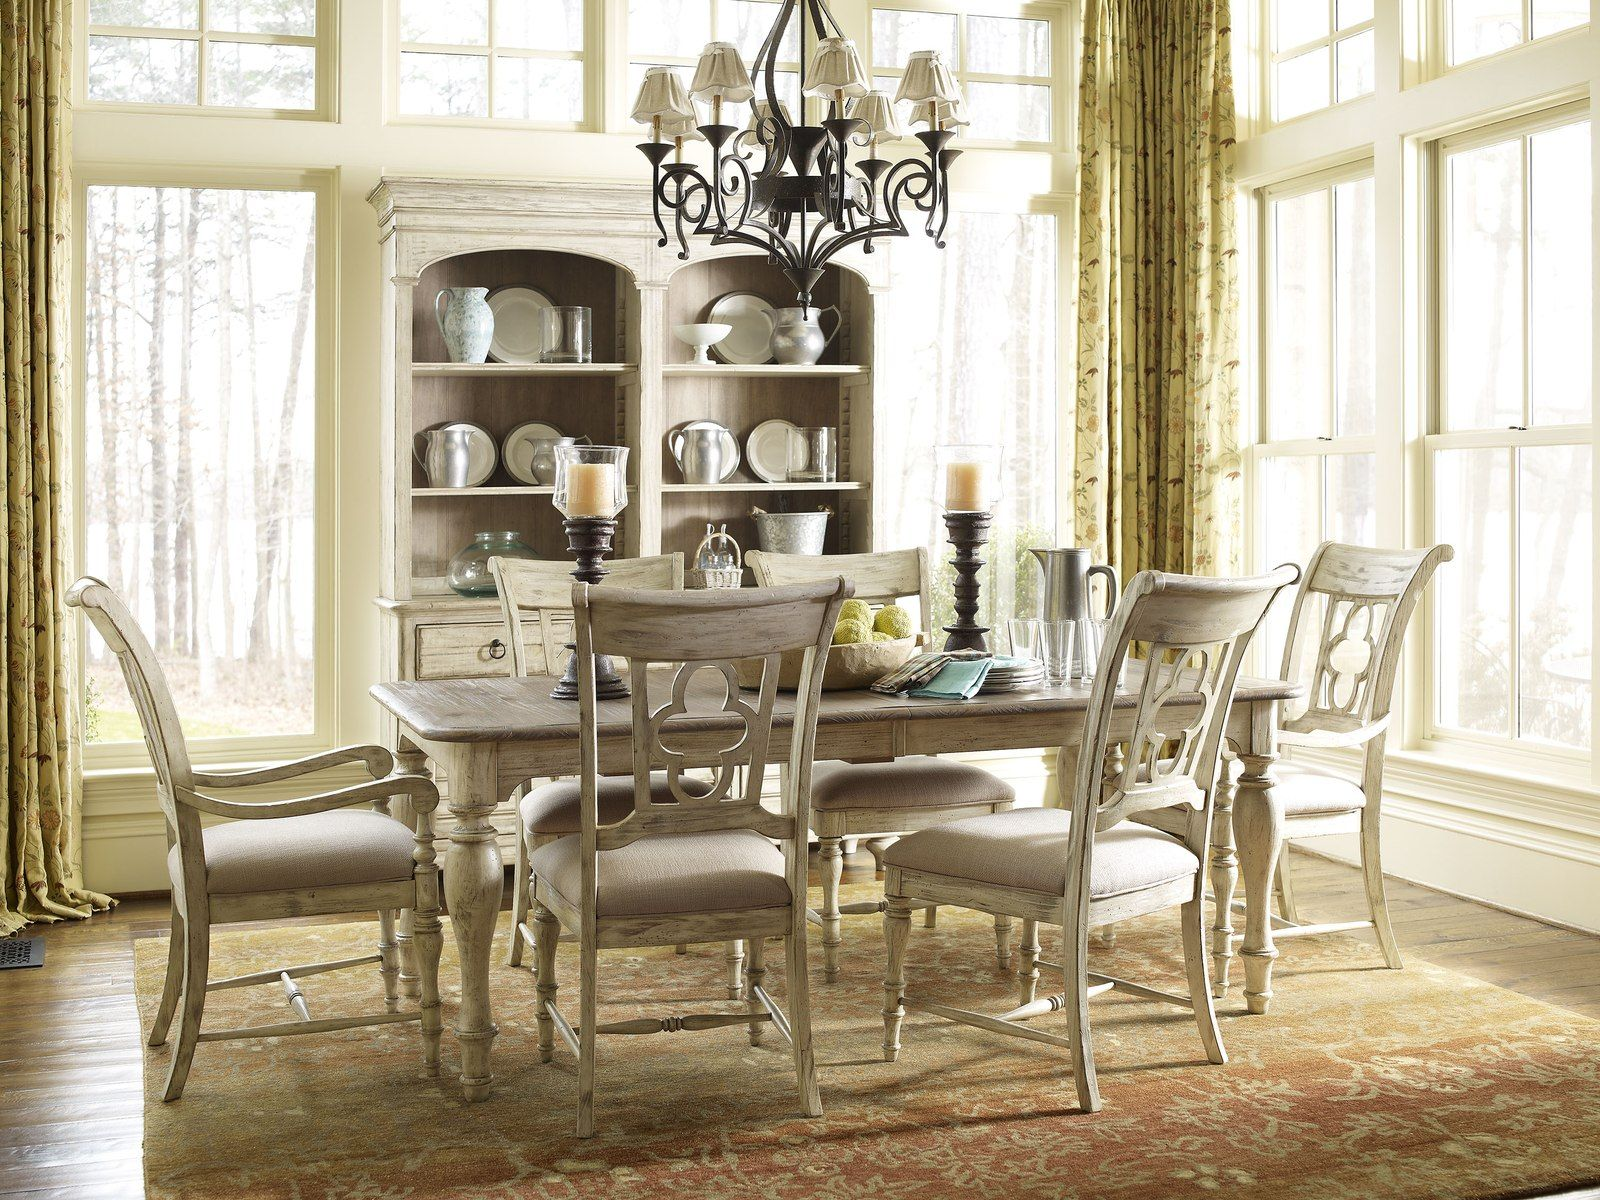 Kincaid Weatherford Canterbury Rectangular Dining Table Set In Cornsilk Finish Code Univ20 For 20 Off By Dining Rooms Outlet Kincaid Furniture Formal Dining Room Sets Dining Room Sets